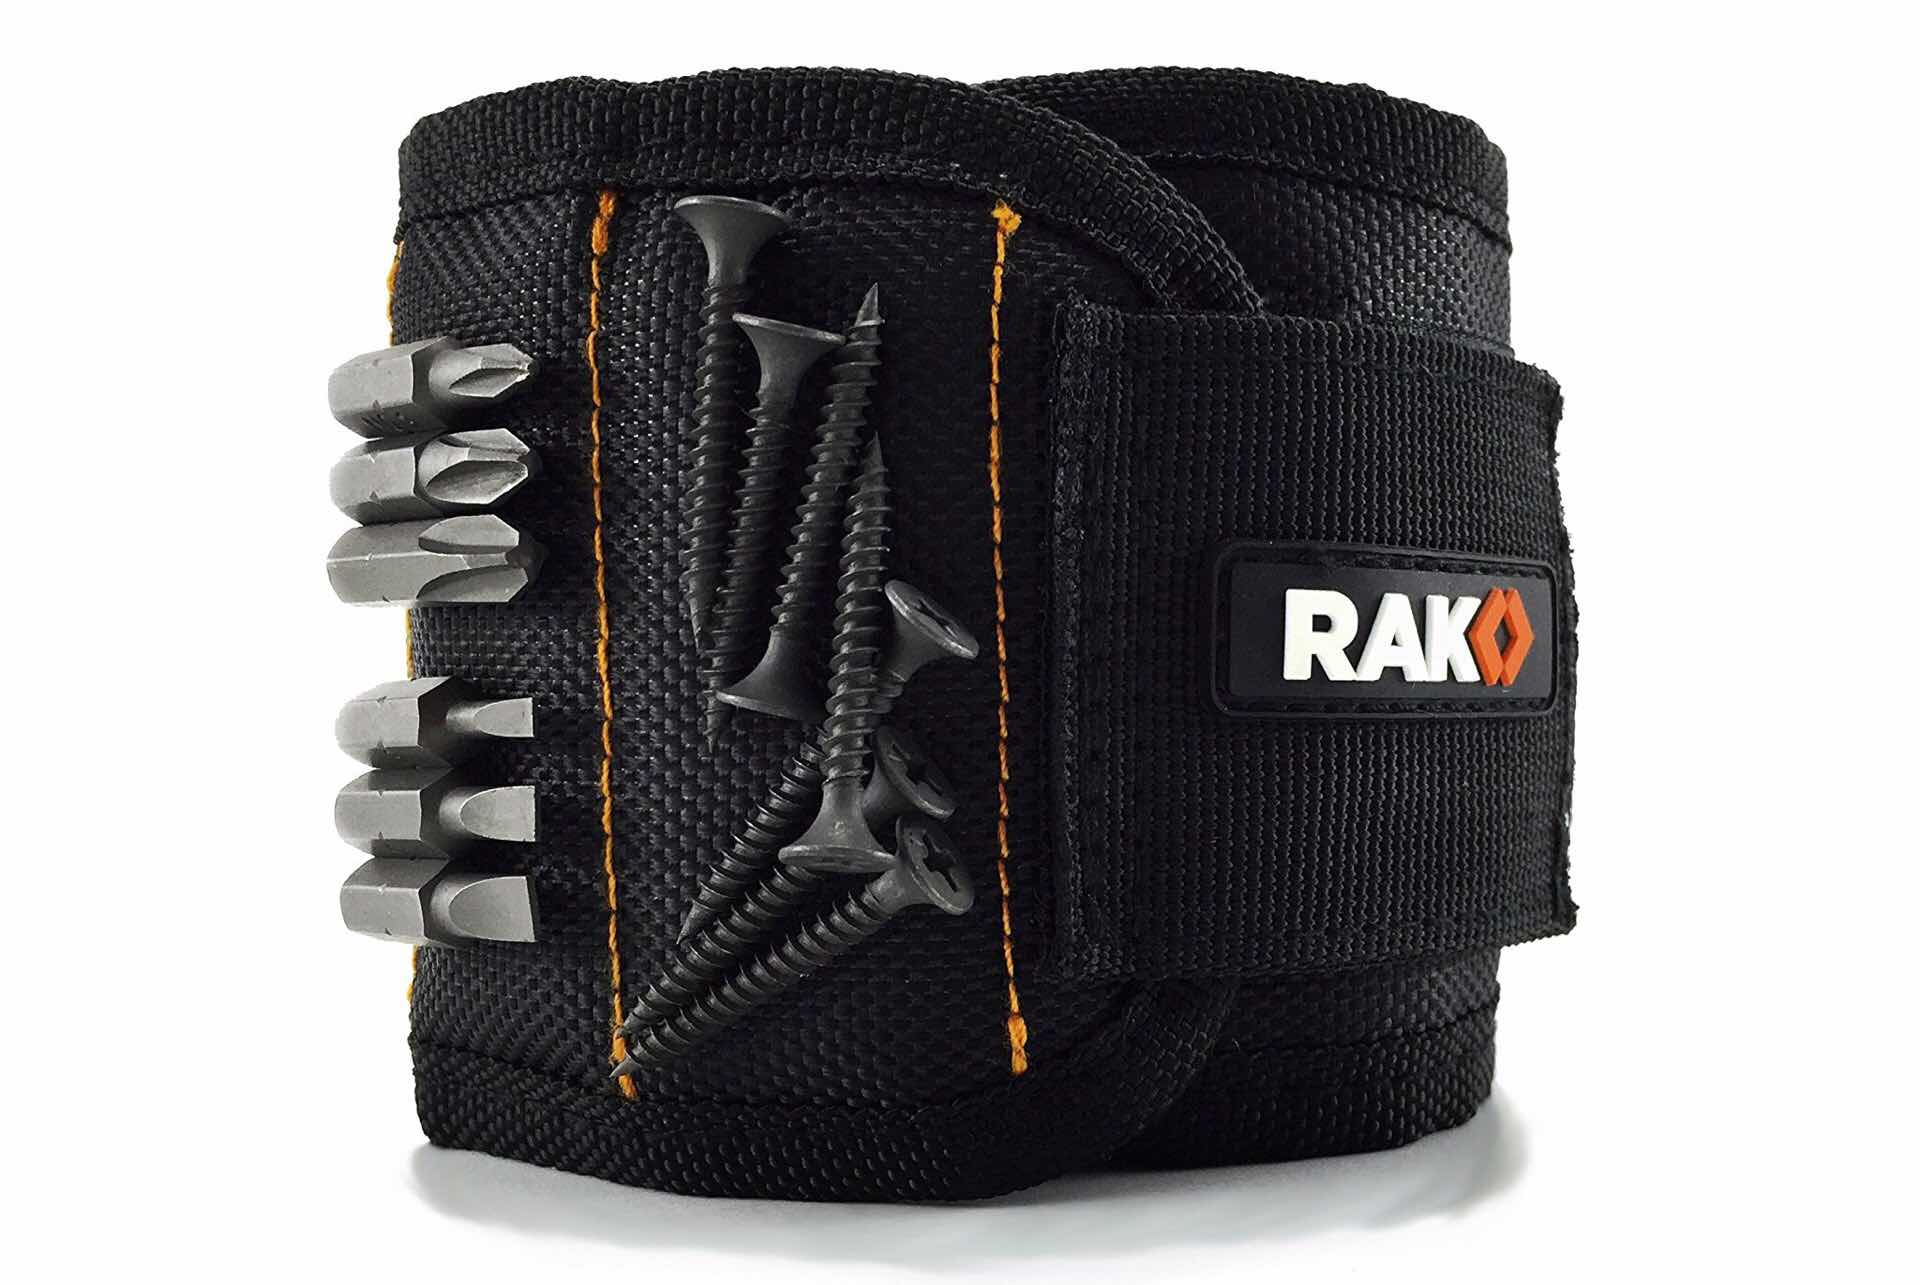 rak-magnetic-wristband